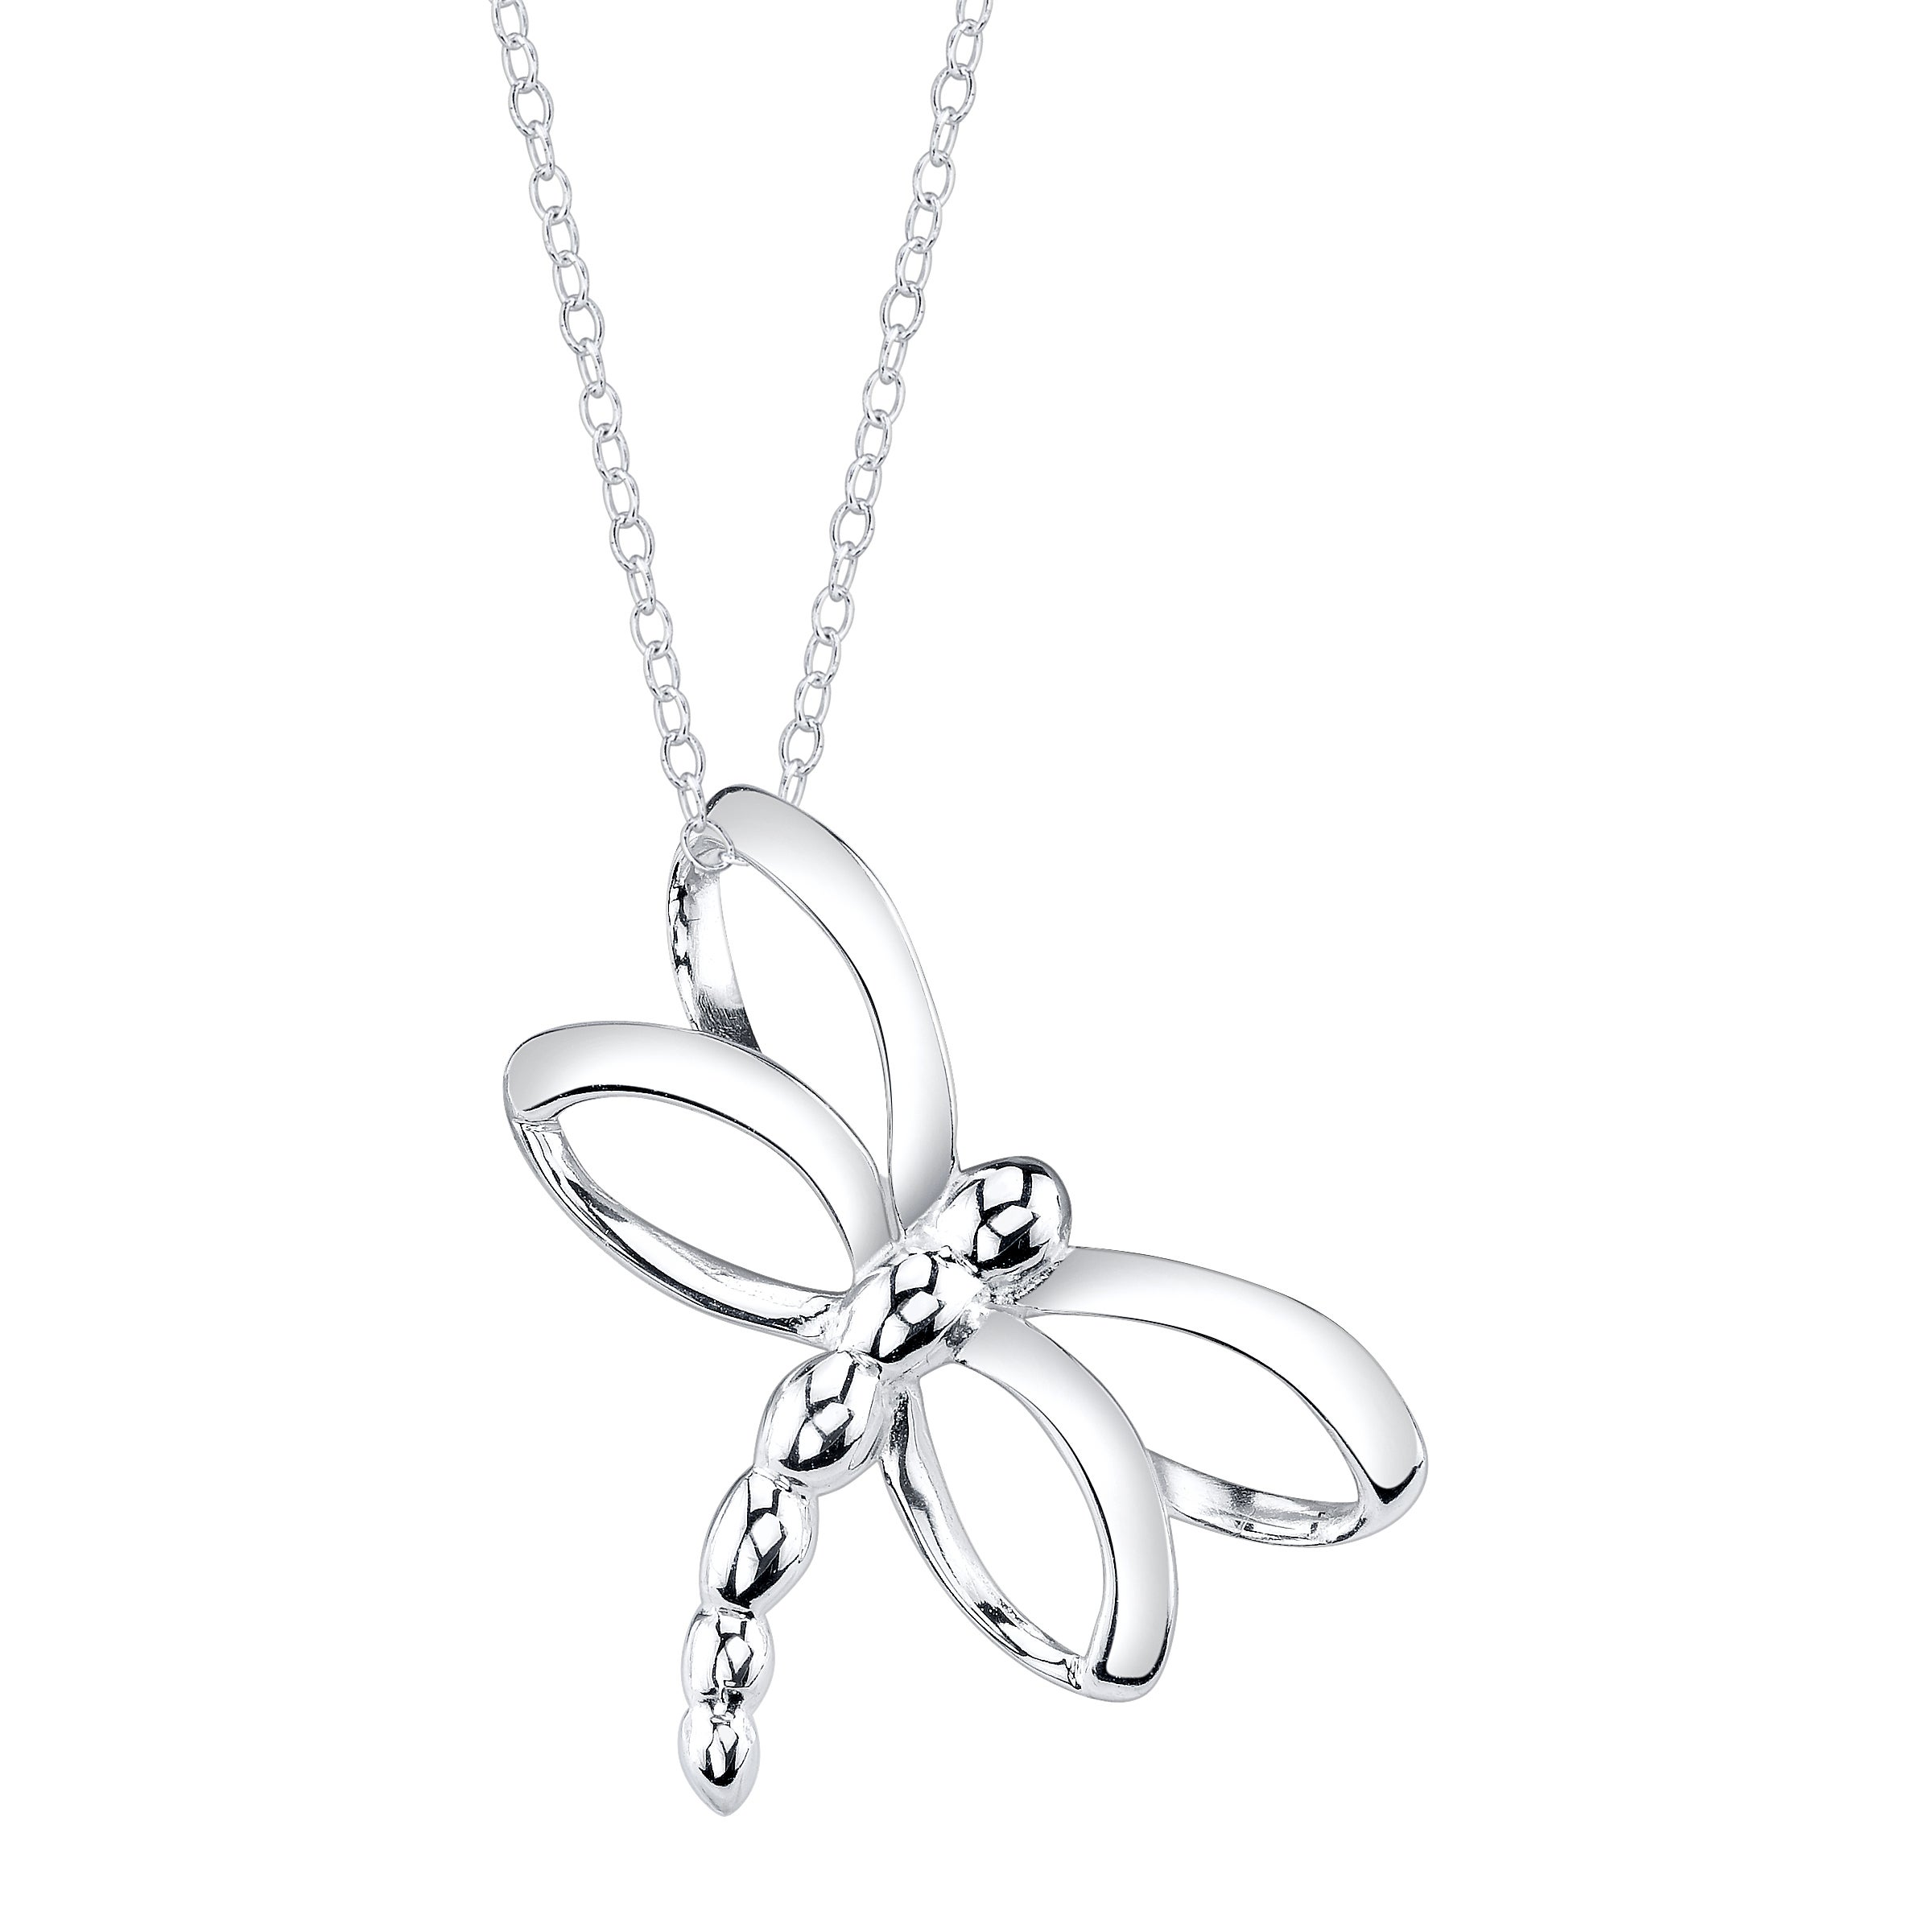 Sterling Silver Open Dragonfly Necklace